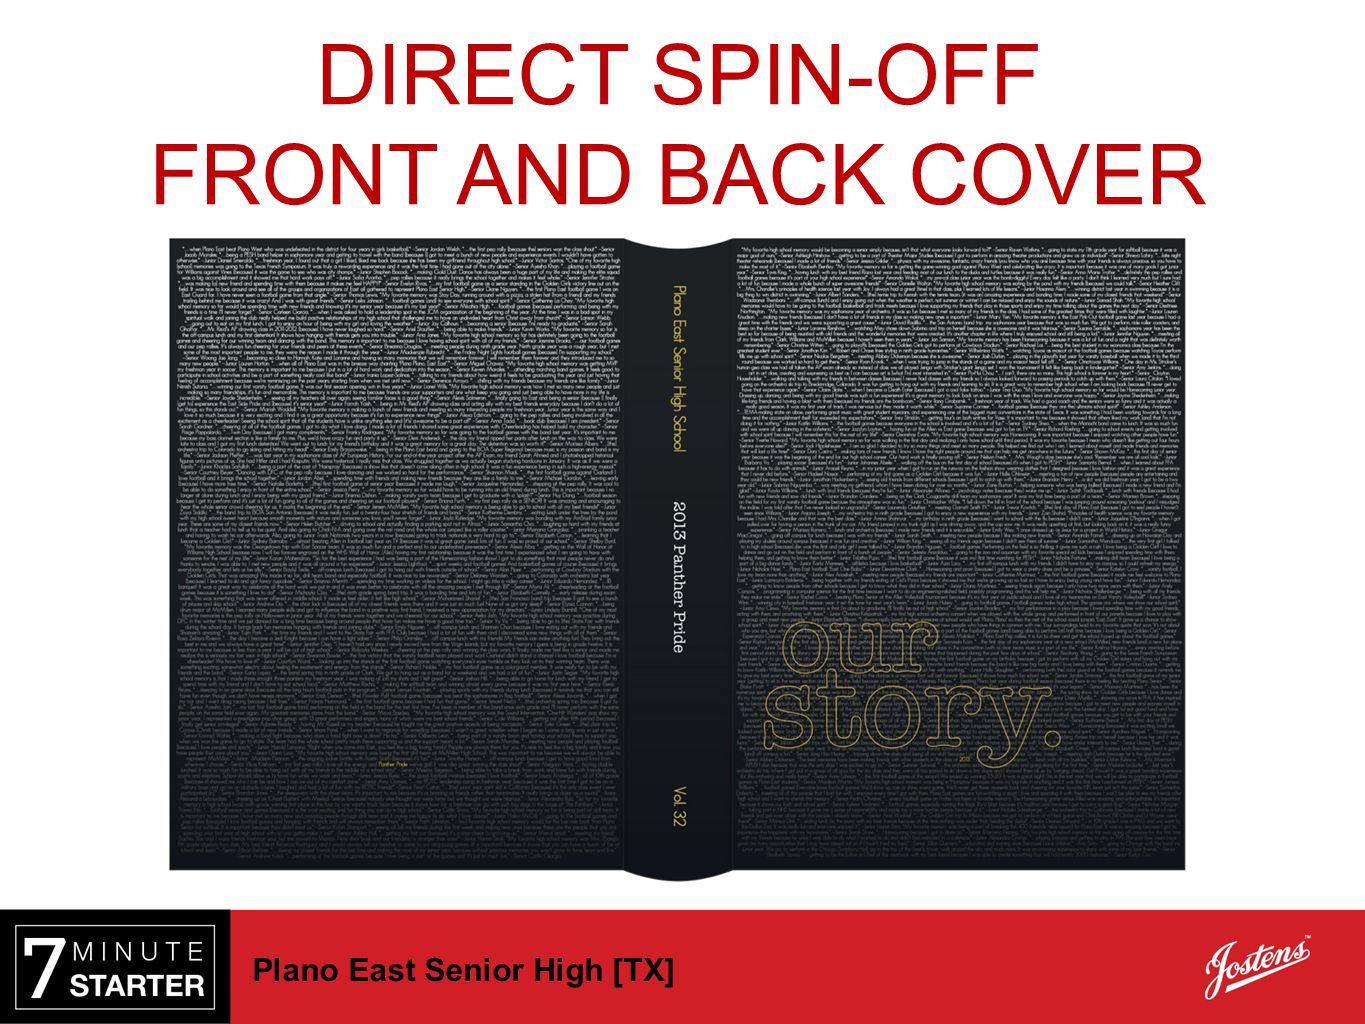 DIRECT SPIN-OFF FRONT AND BACK COVER Plano East Senior High [TX]